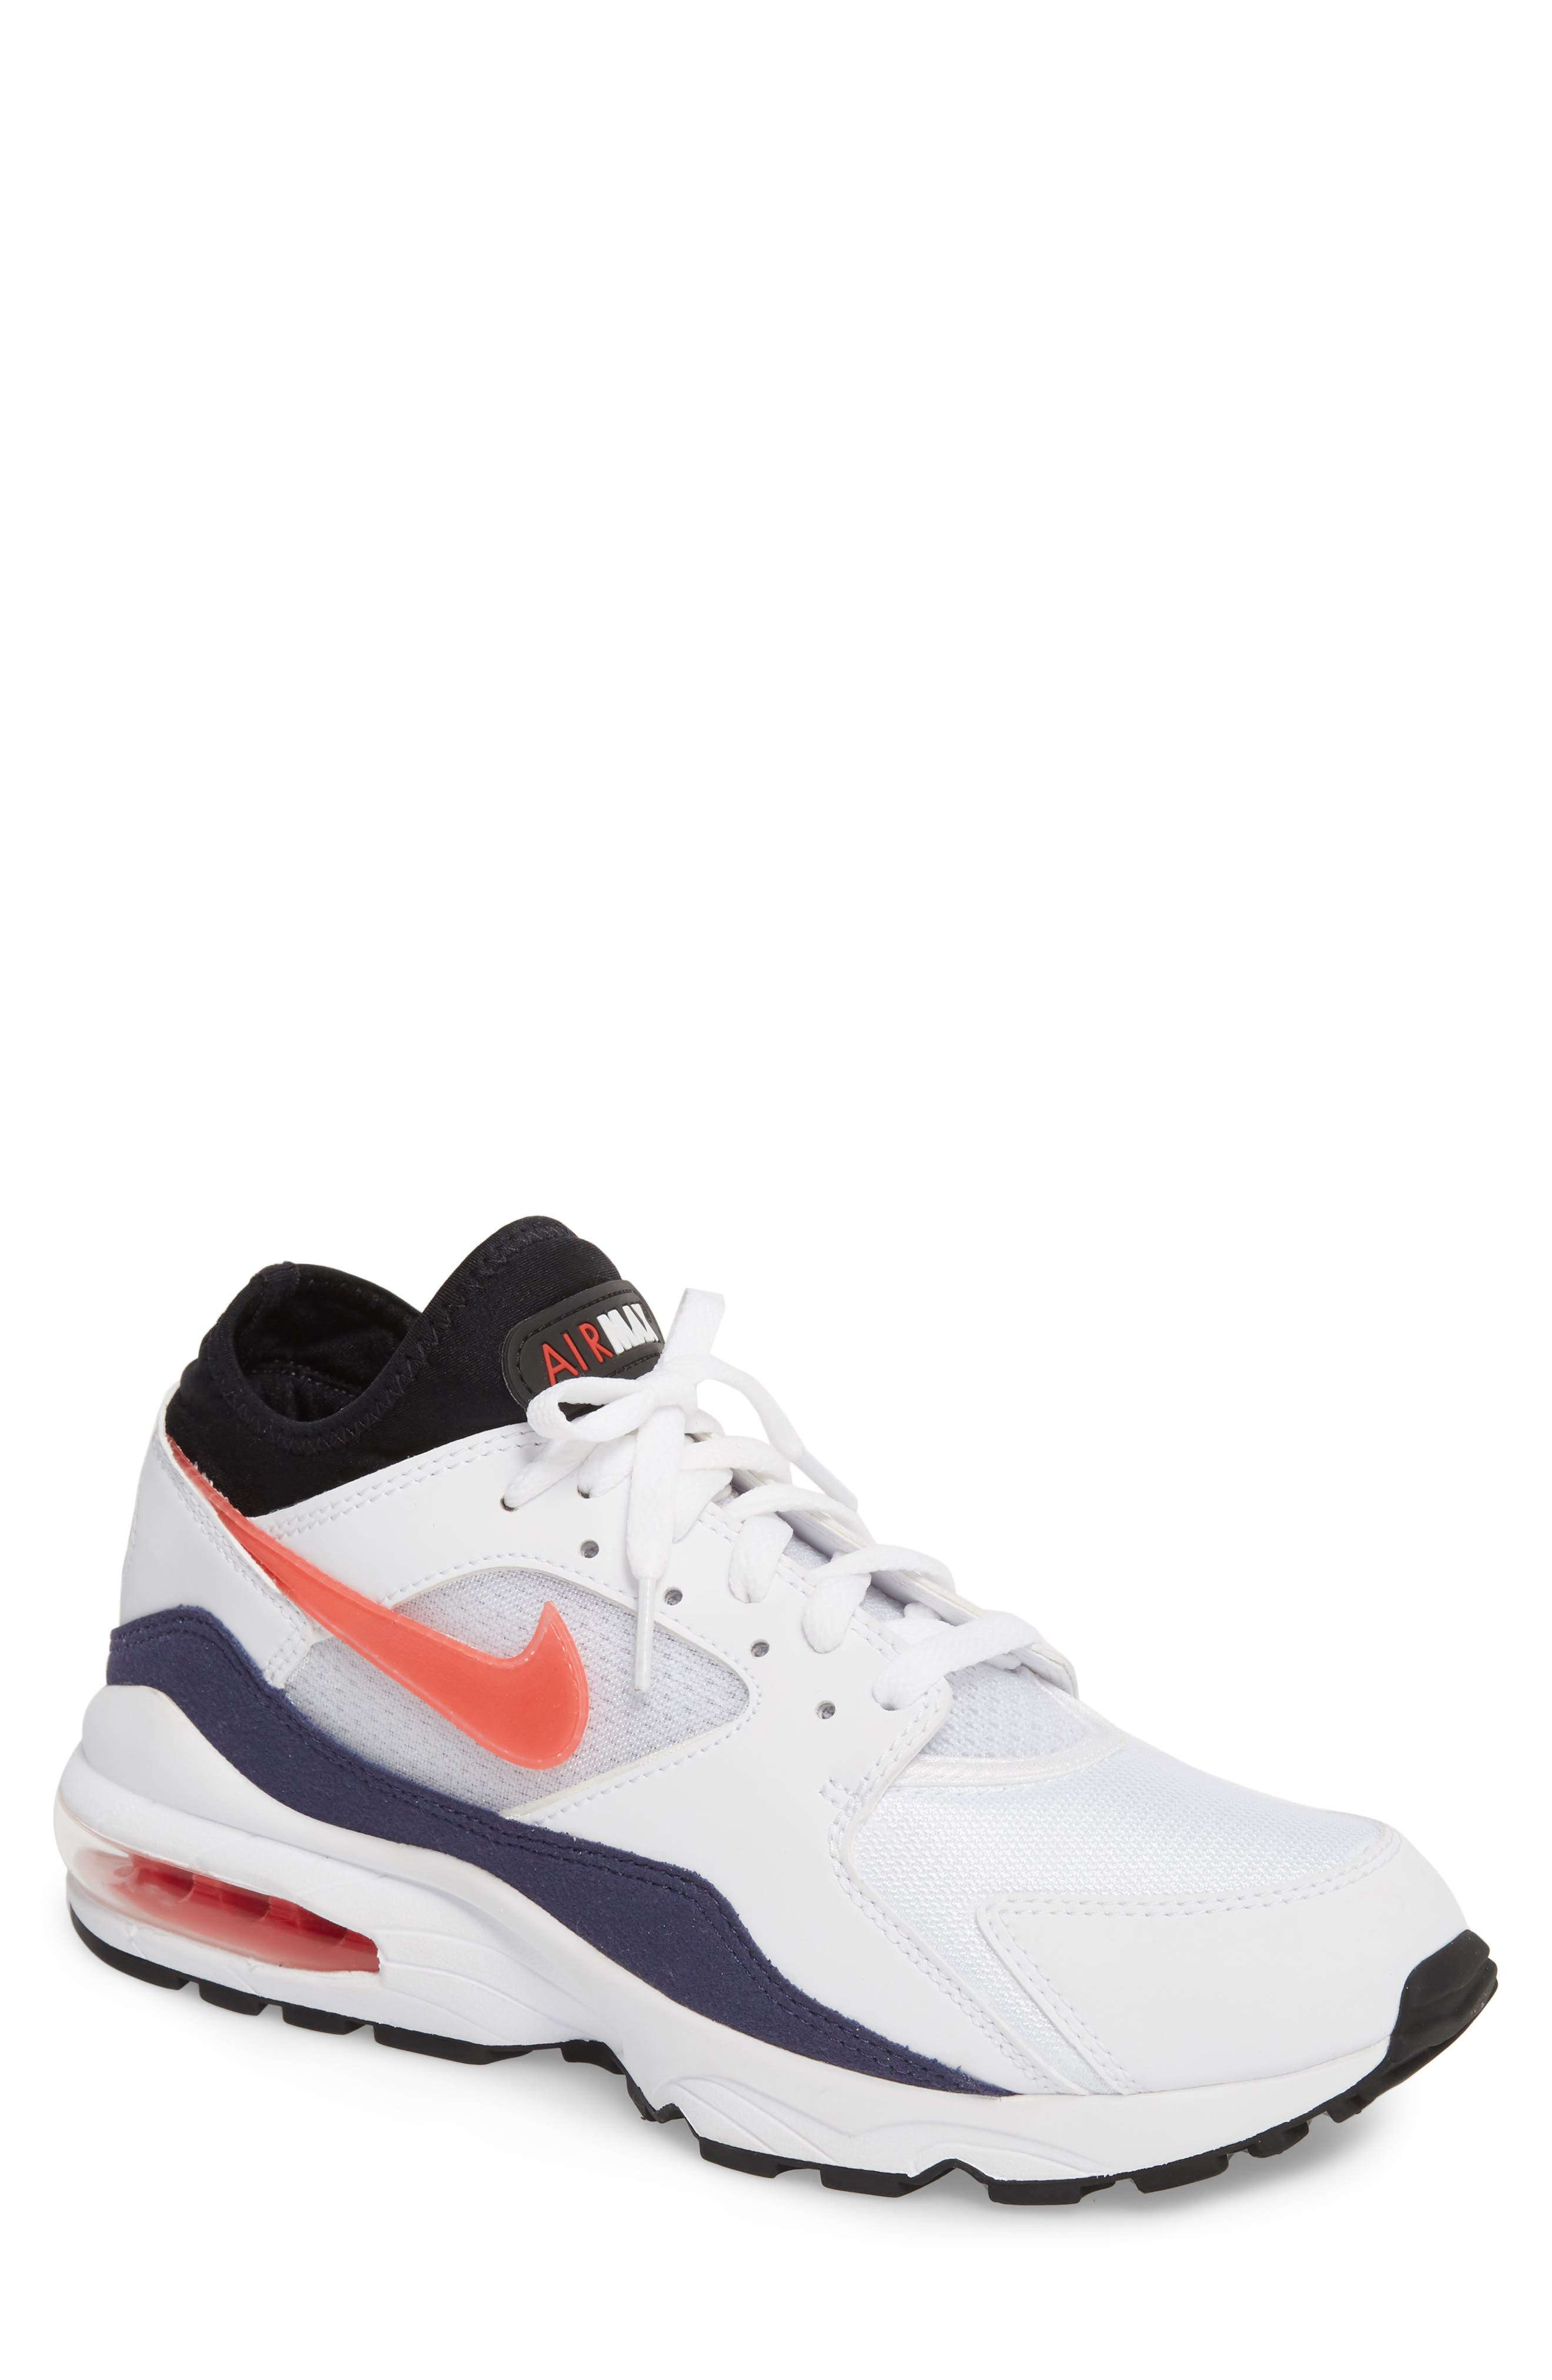 Free Shipping 6070 OFF Uk 2014 New Release Nike Air Max 2013 Punching Mens Shoes White Red PSJee